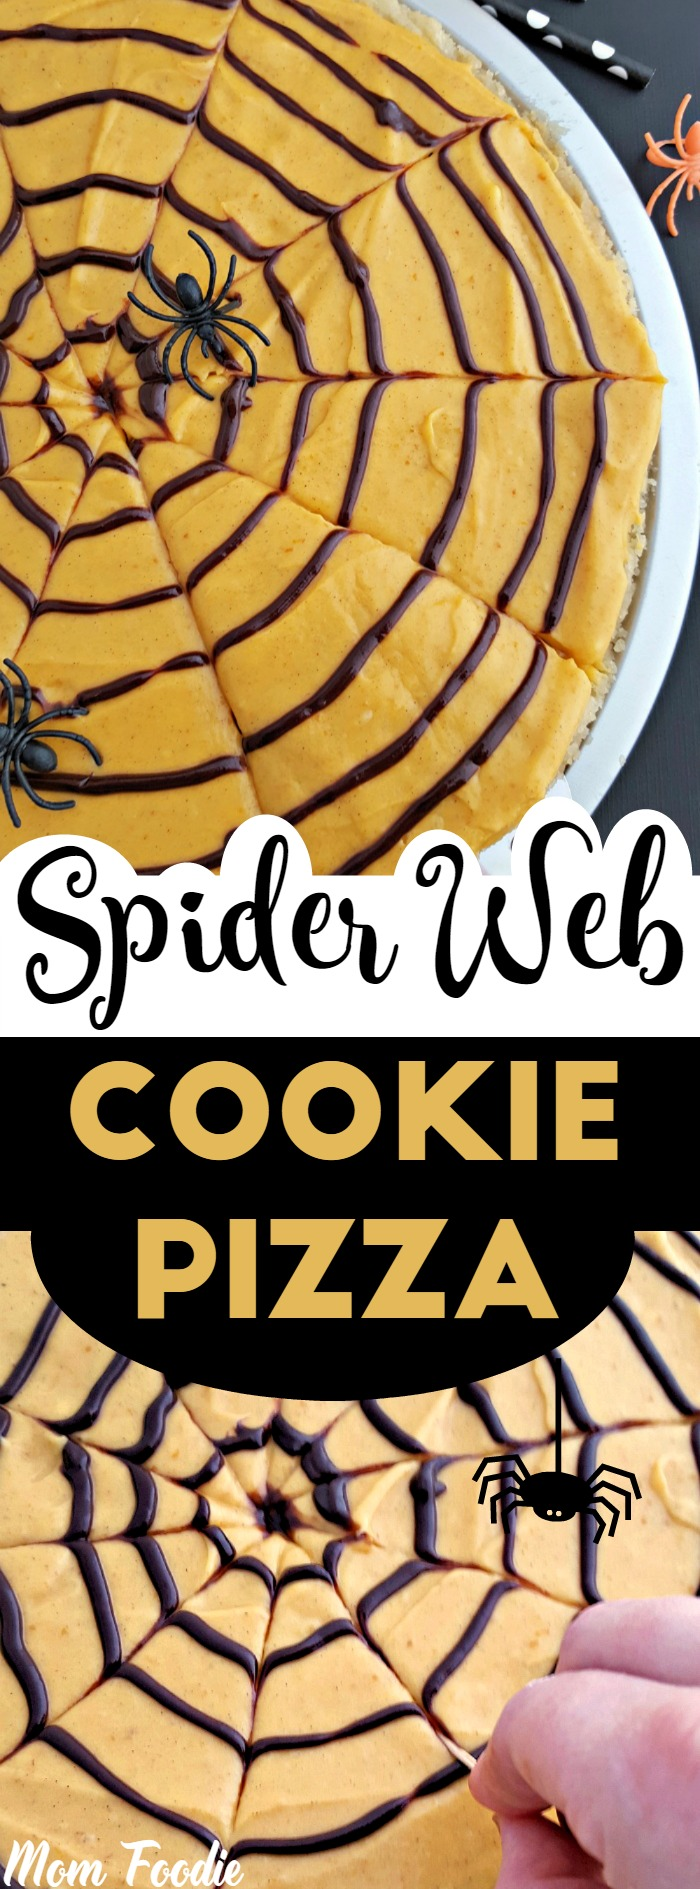 Spider Web Cookie Pizza with Pumpkin Spice Frosting : Halloween Party Food kids will love